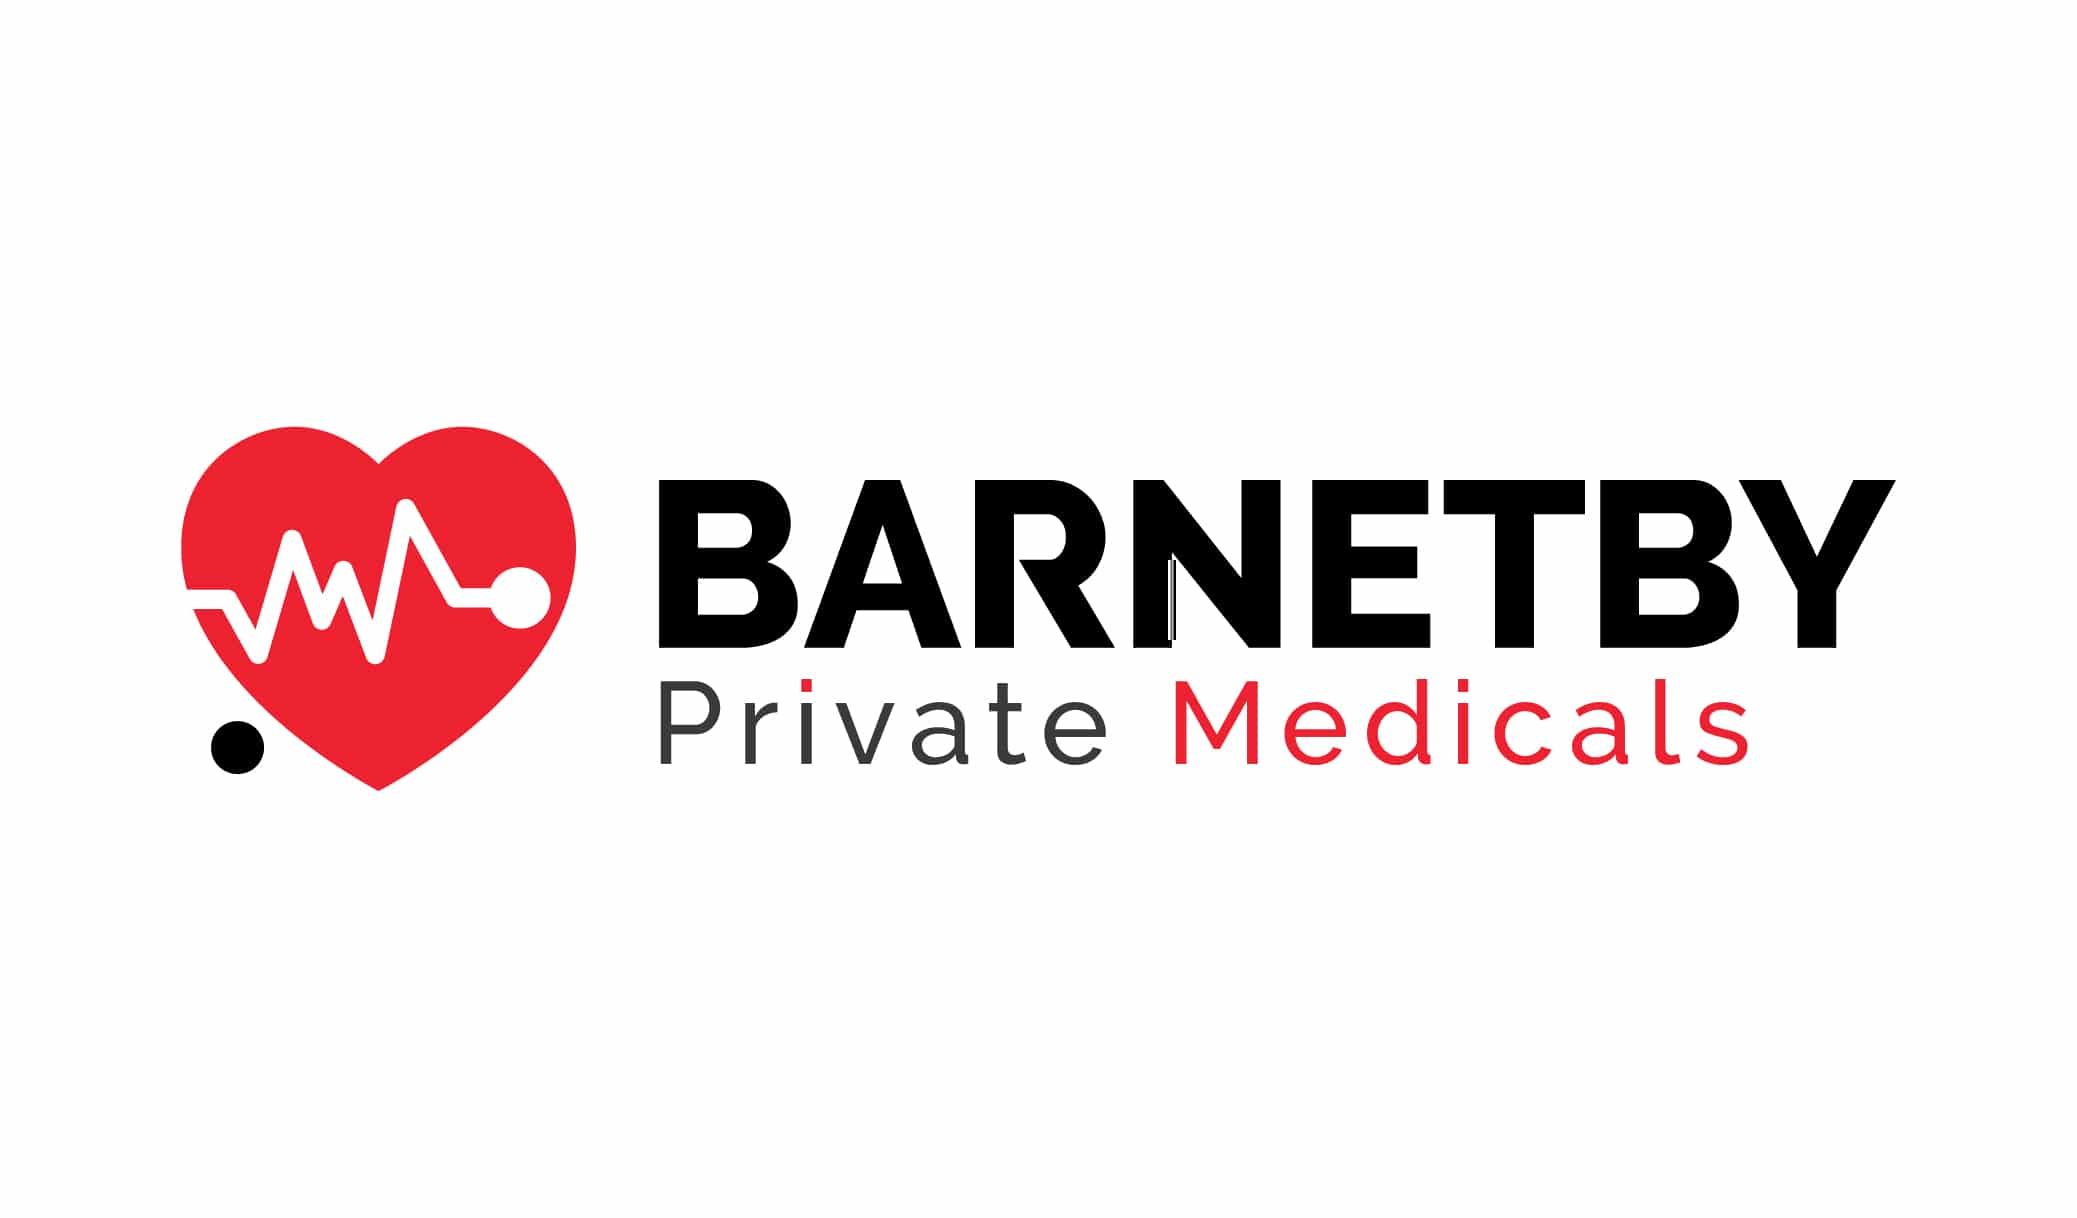 Barnetby Private Medicals